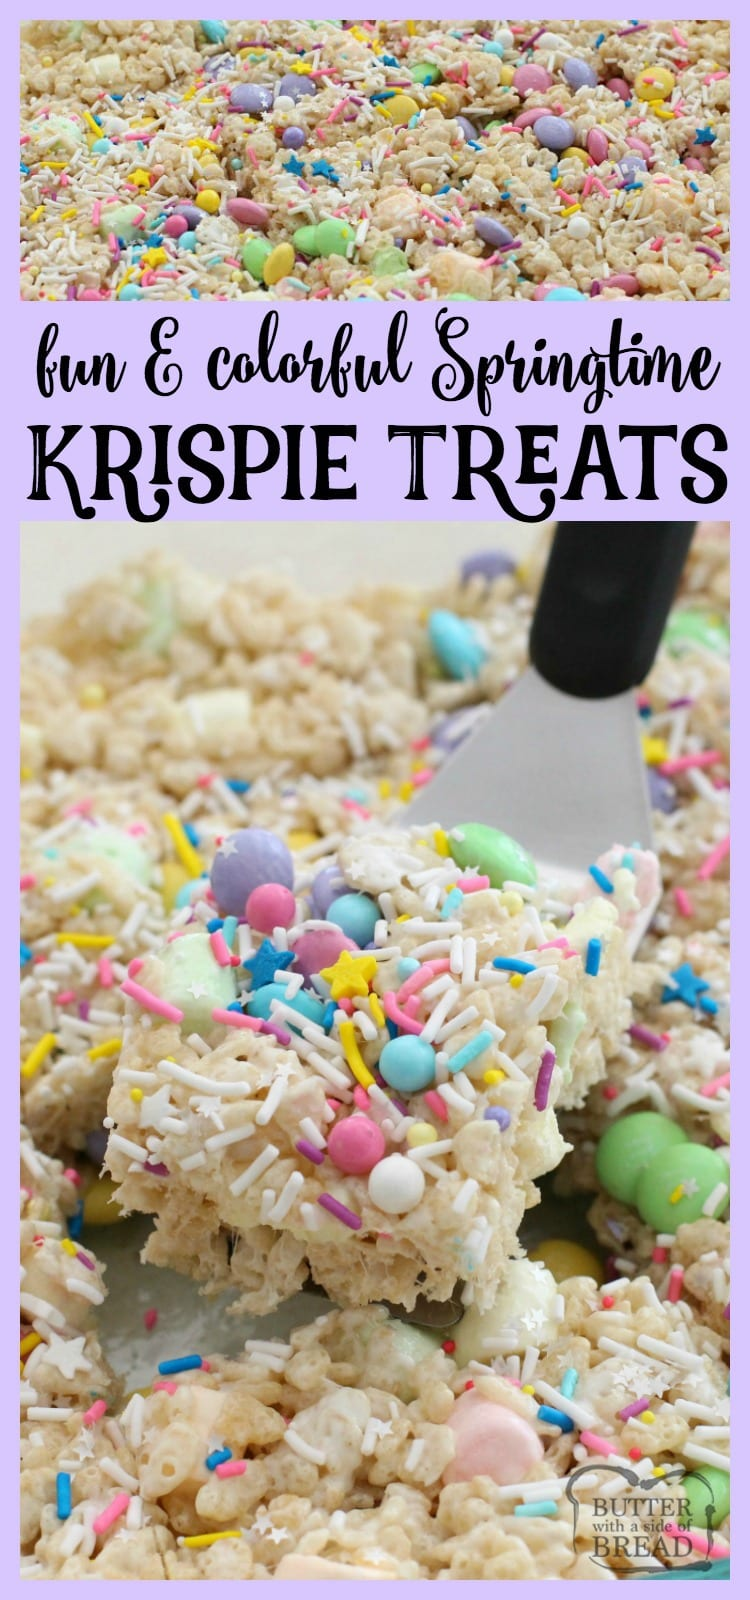 Super fun & easy to make, these Spring Krispie Treats are amazing! The extra butter and marshmallows helps too I'm sure. LOVE the added sprinkles! Easy dessert recipe from Butter With A Side of Bread